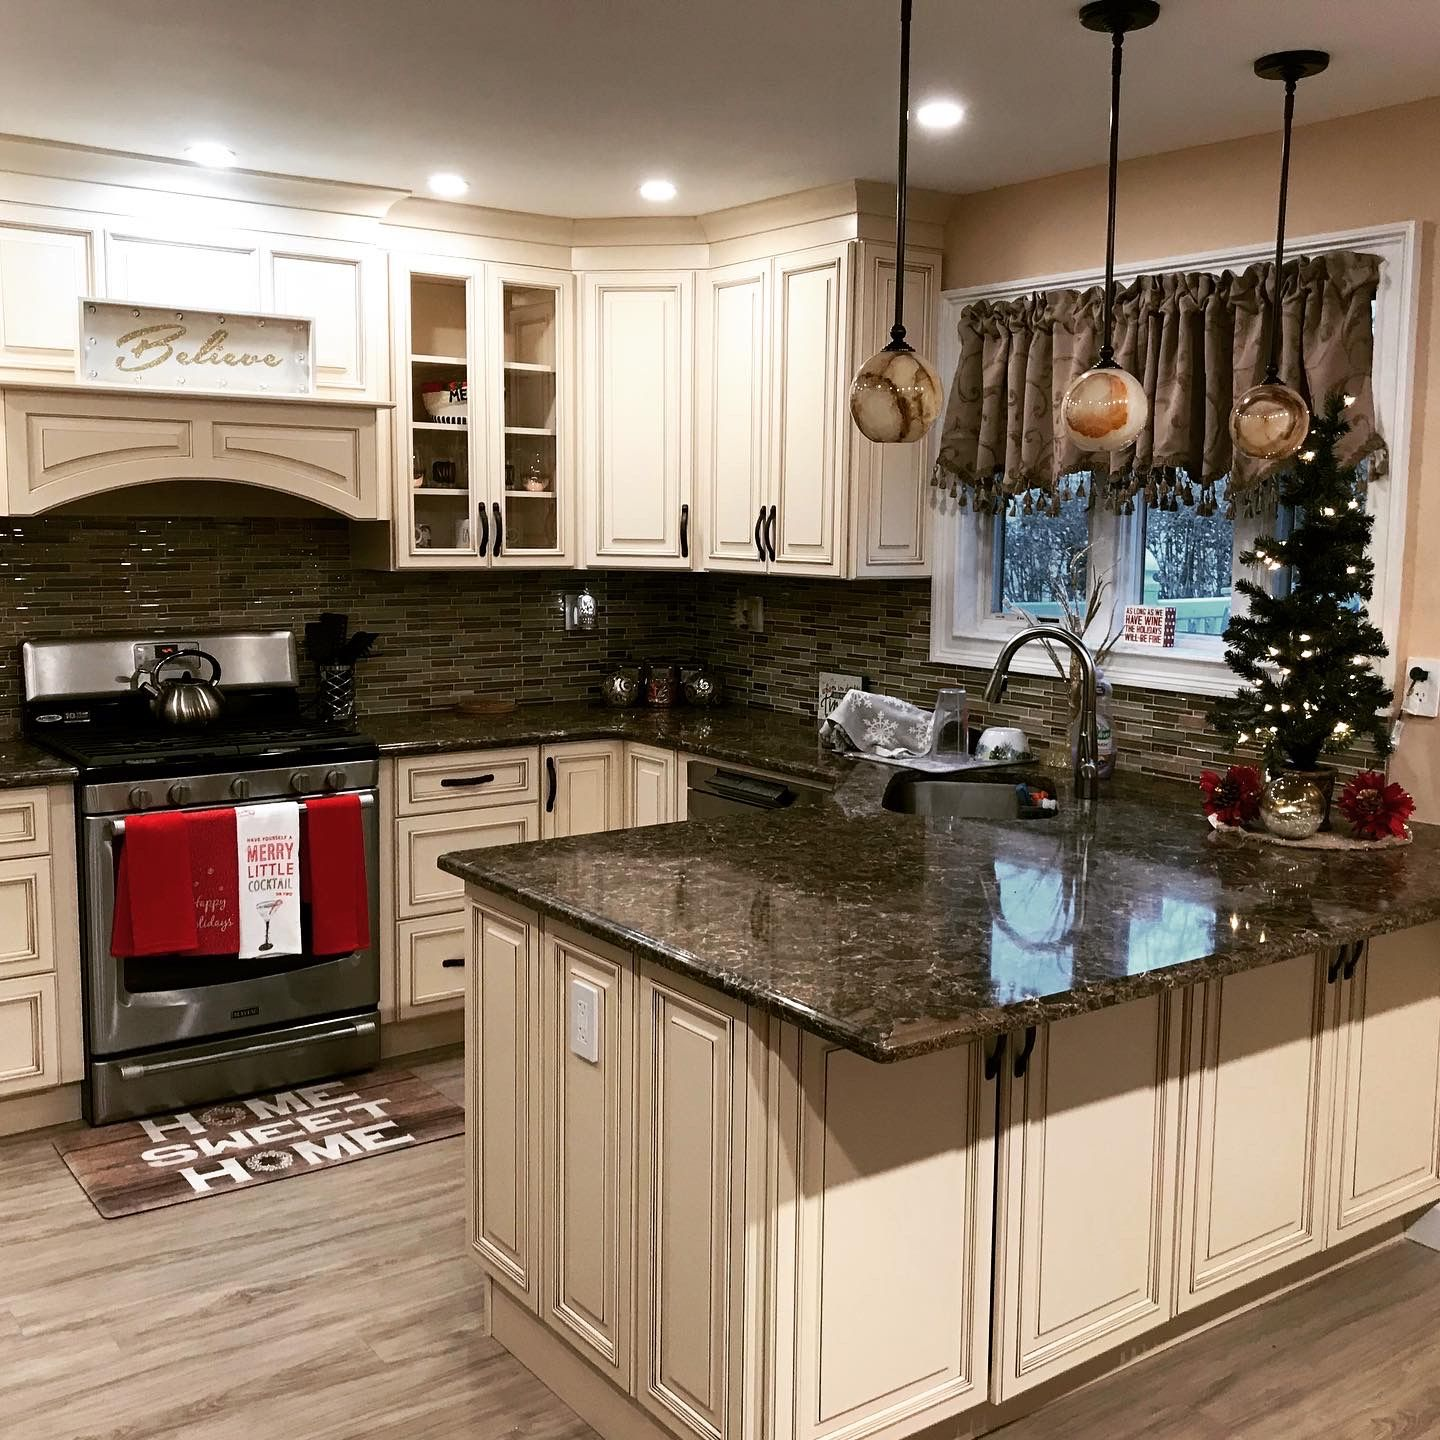 Westchester county kitchen remodel featuring fabuwood ...